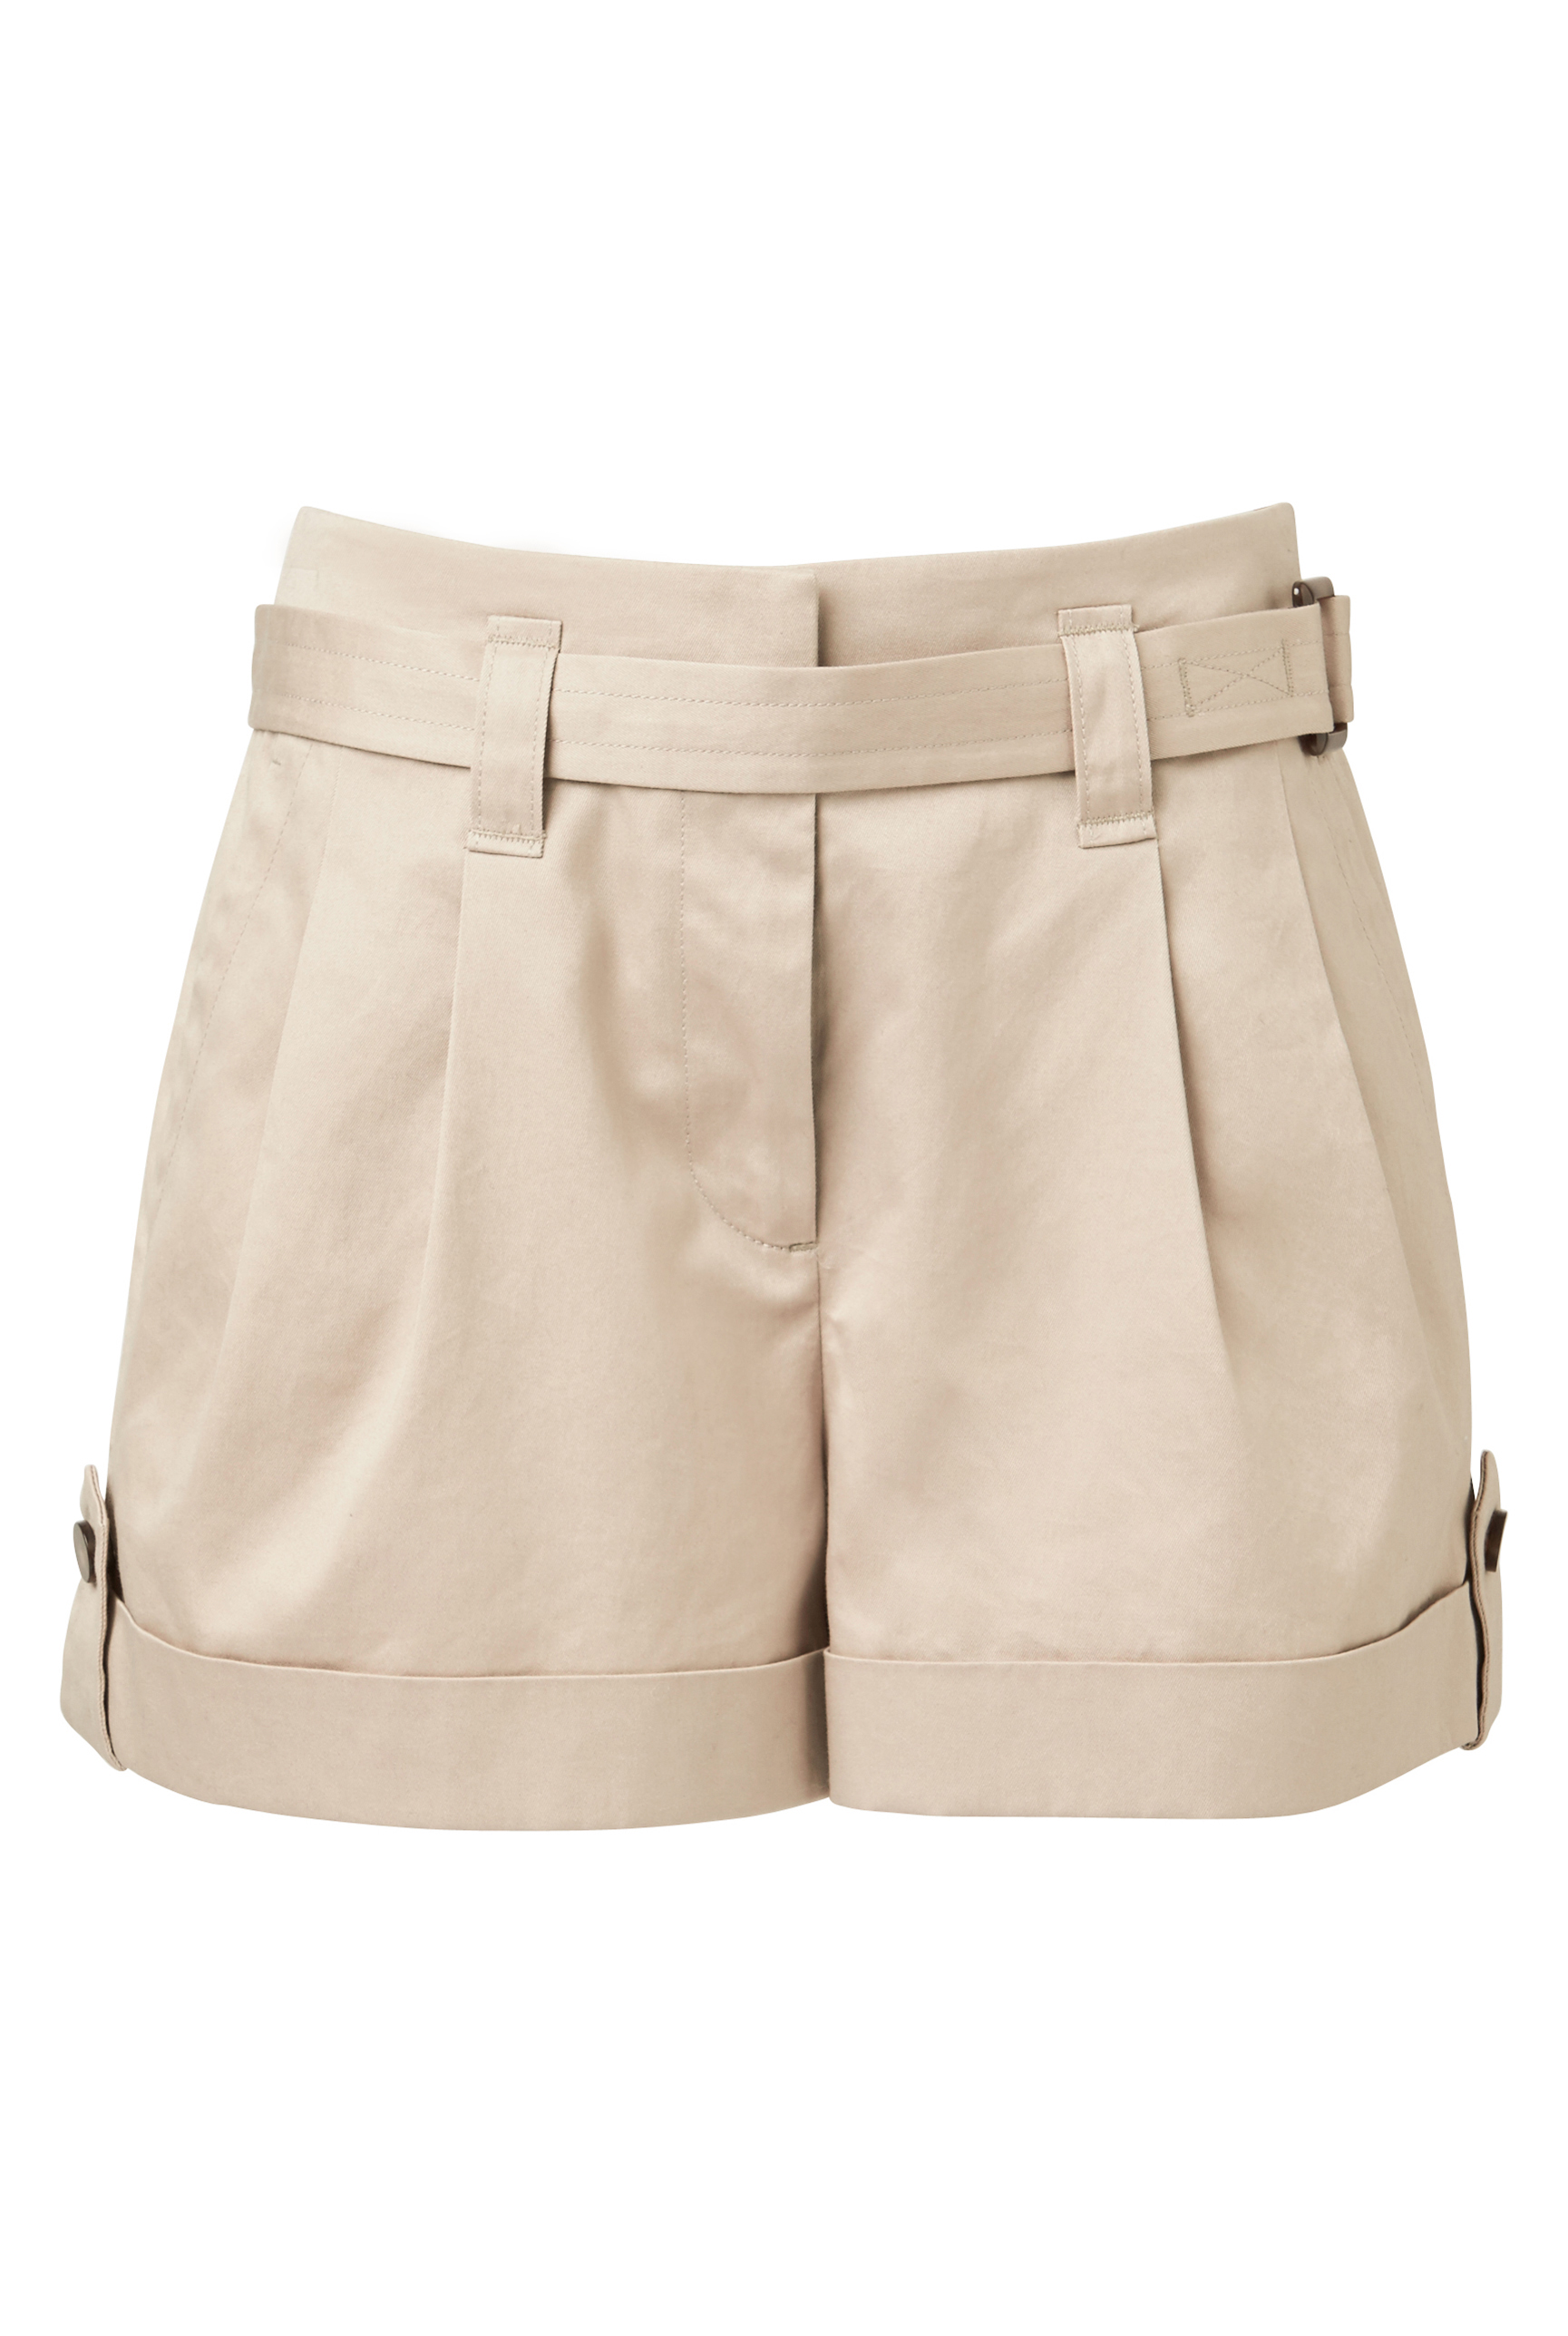 Witchery Safari SHort, RRP $109.90